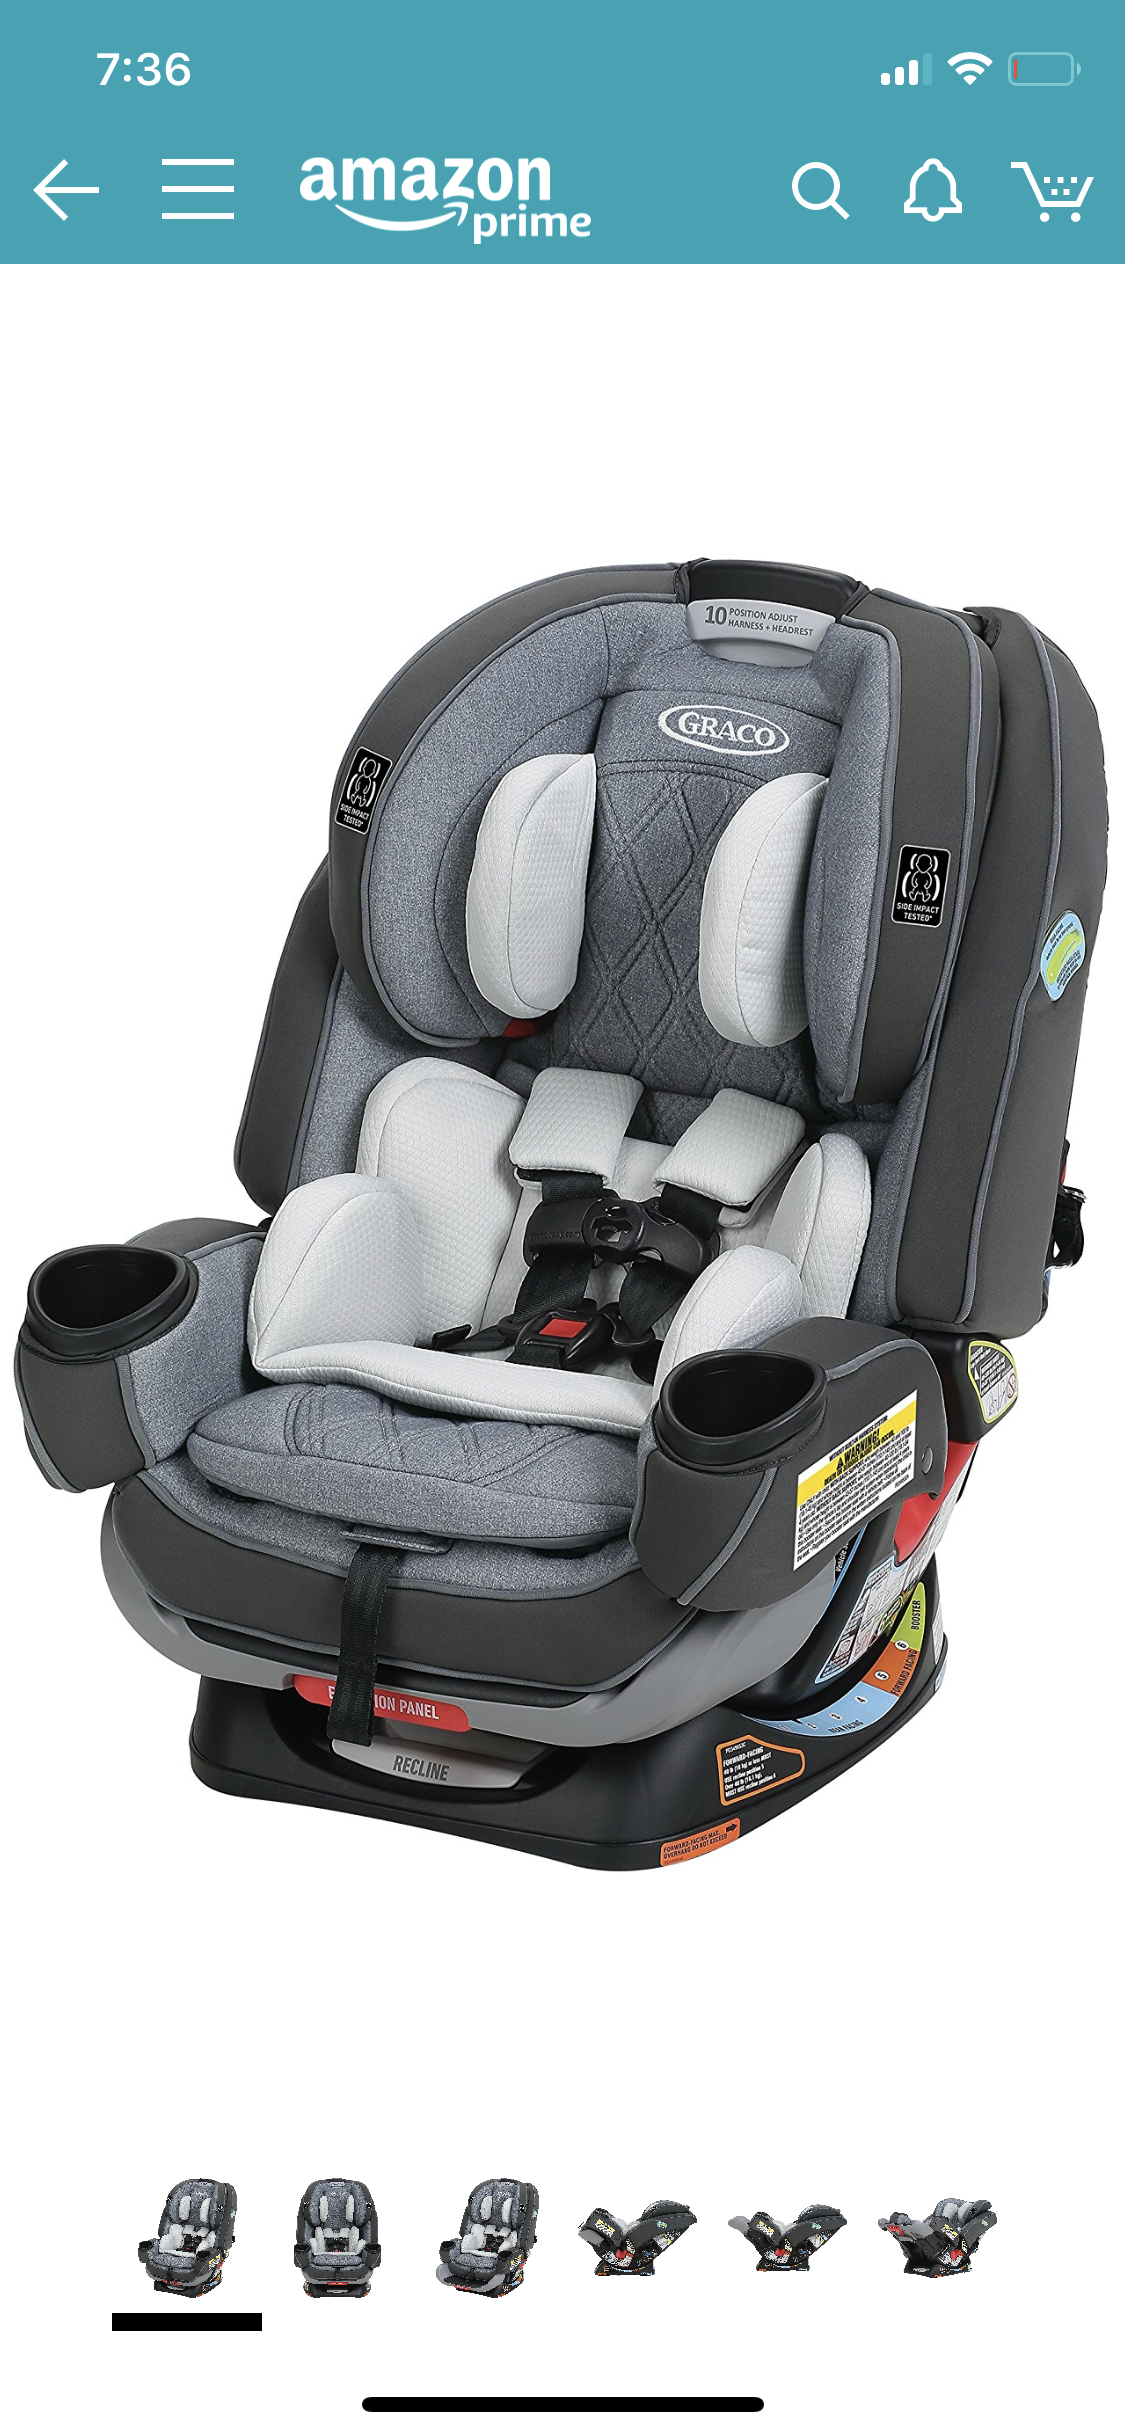 Creative This Onehad So Many Things Going Graco May 2017 Babies Forums What To Expect I Hope My Son Loves I Did So Much Research On Car Seats I Hope Be Sooo Safe baby Graco 4ever Car Seat